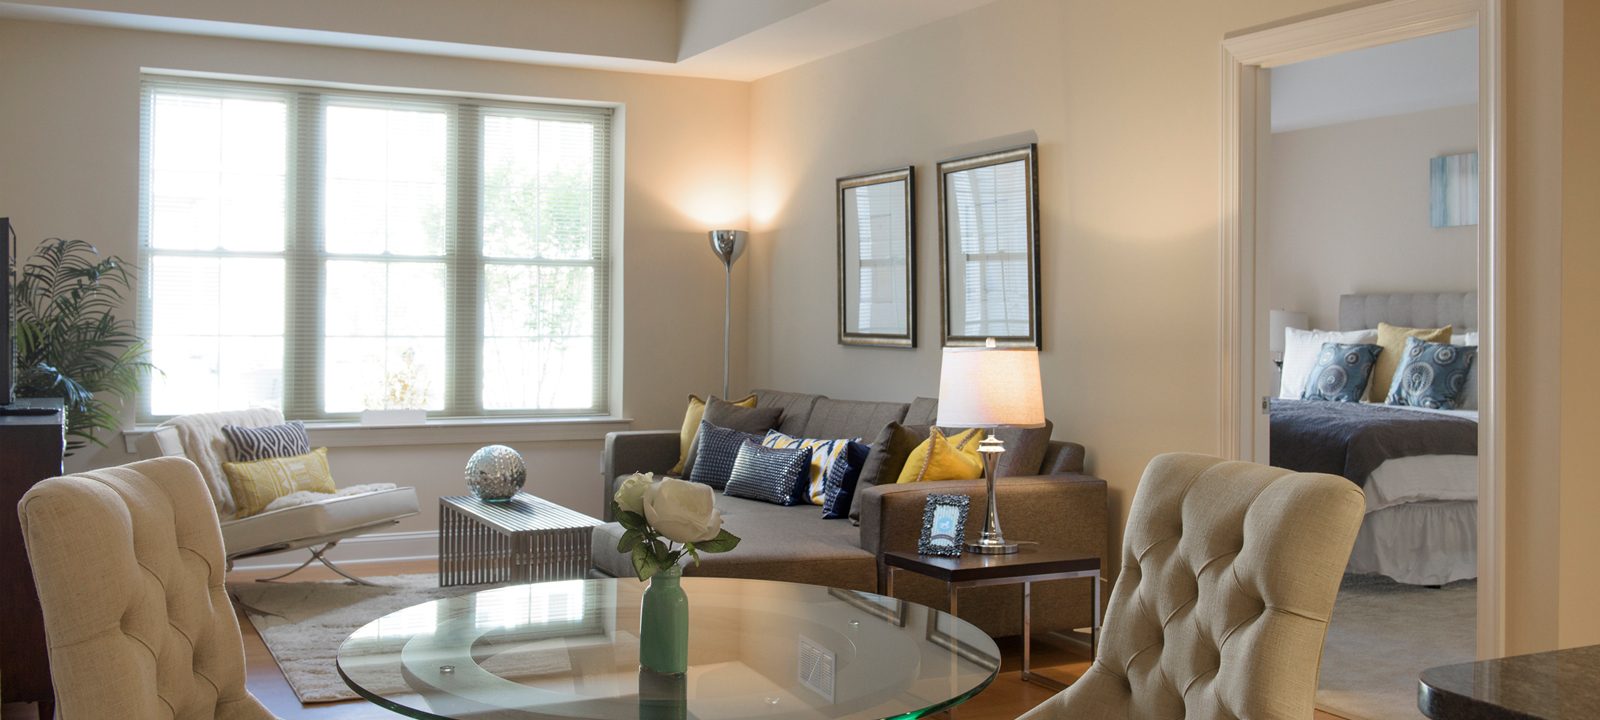 living room at Meridian at Eagleview apartments in Exton PA